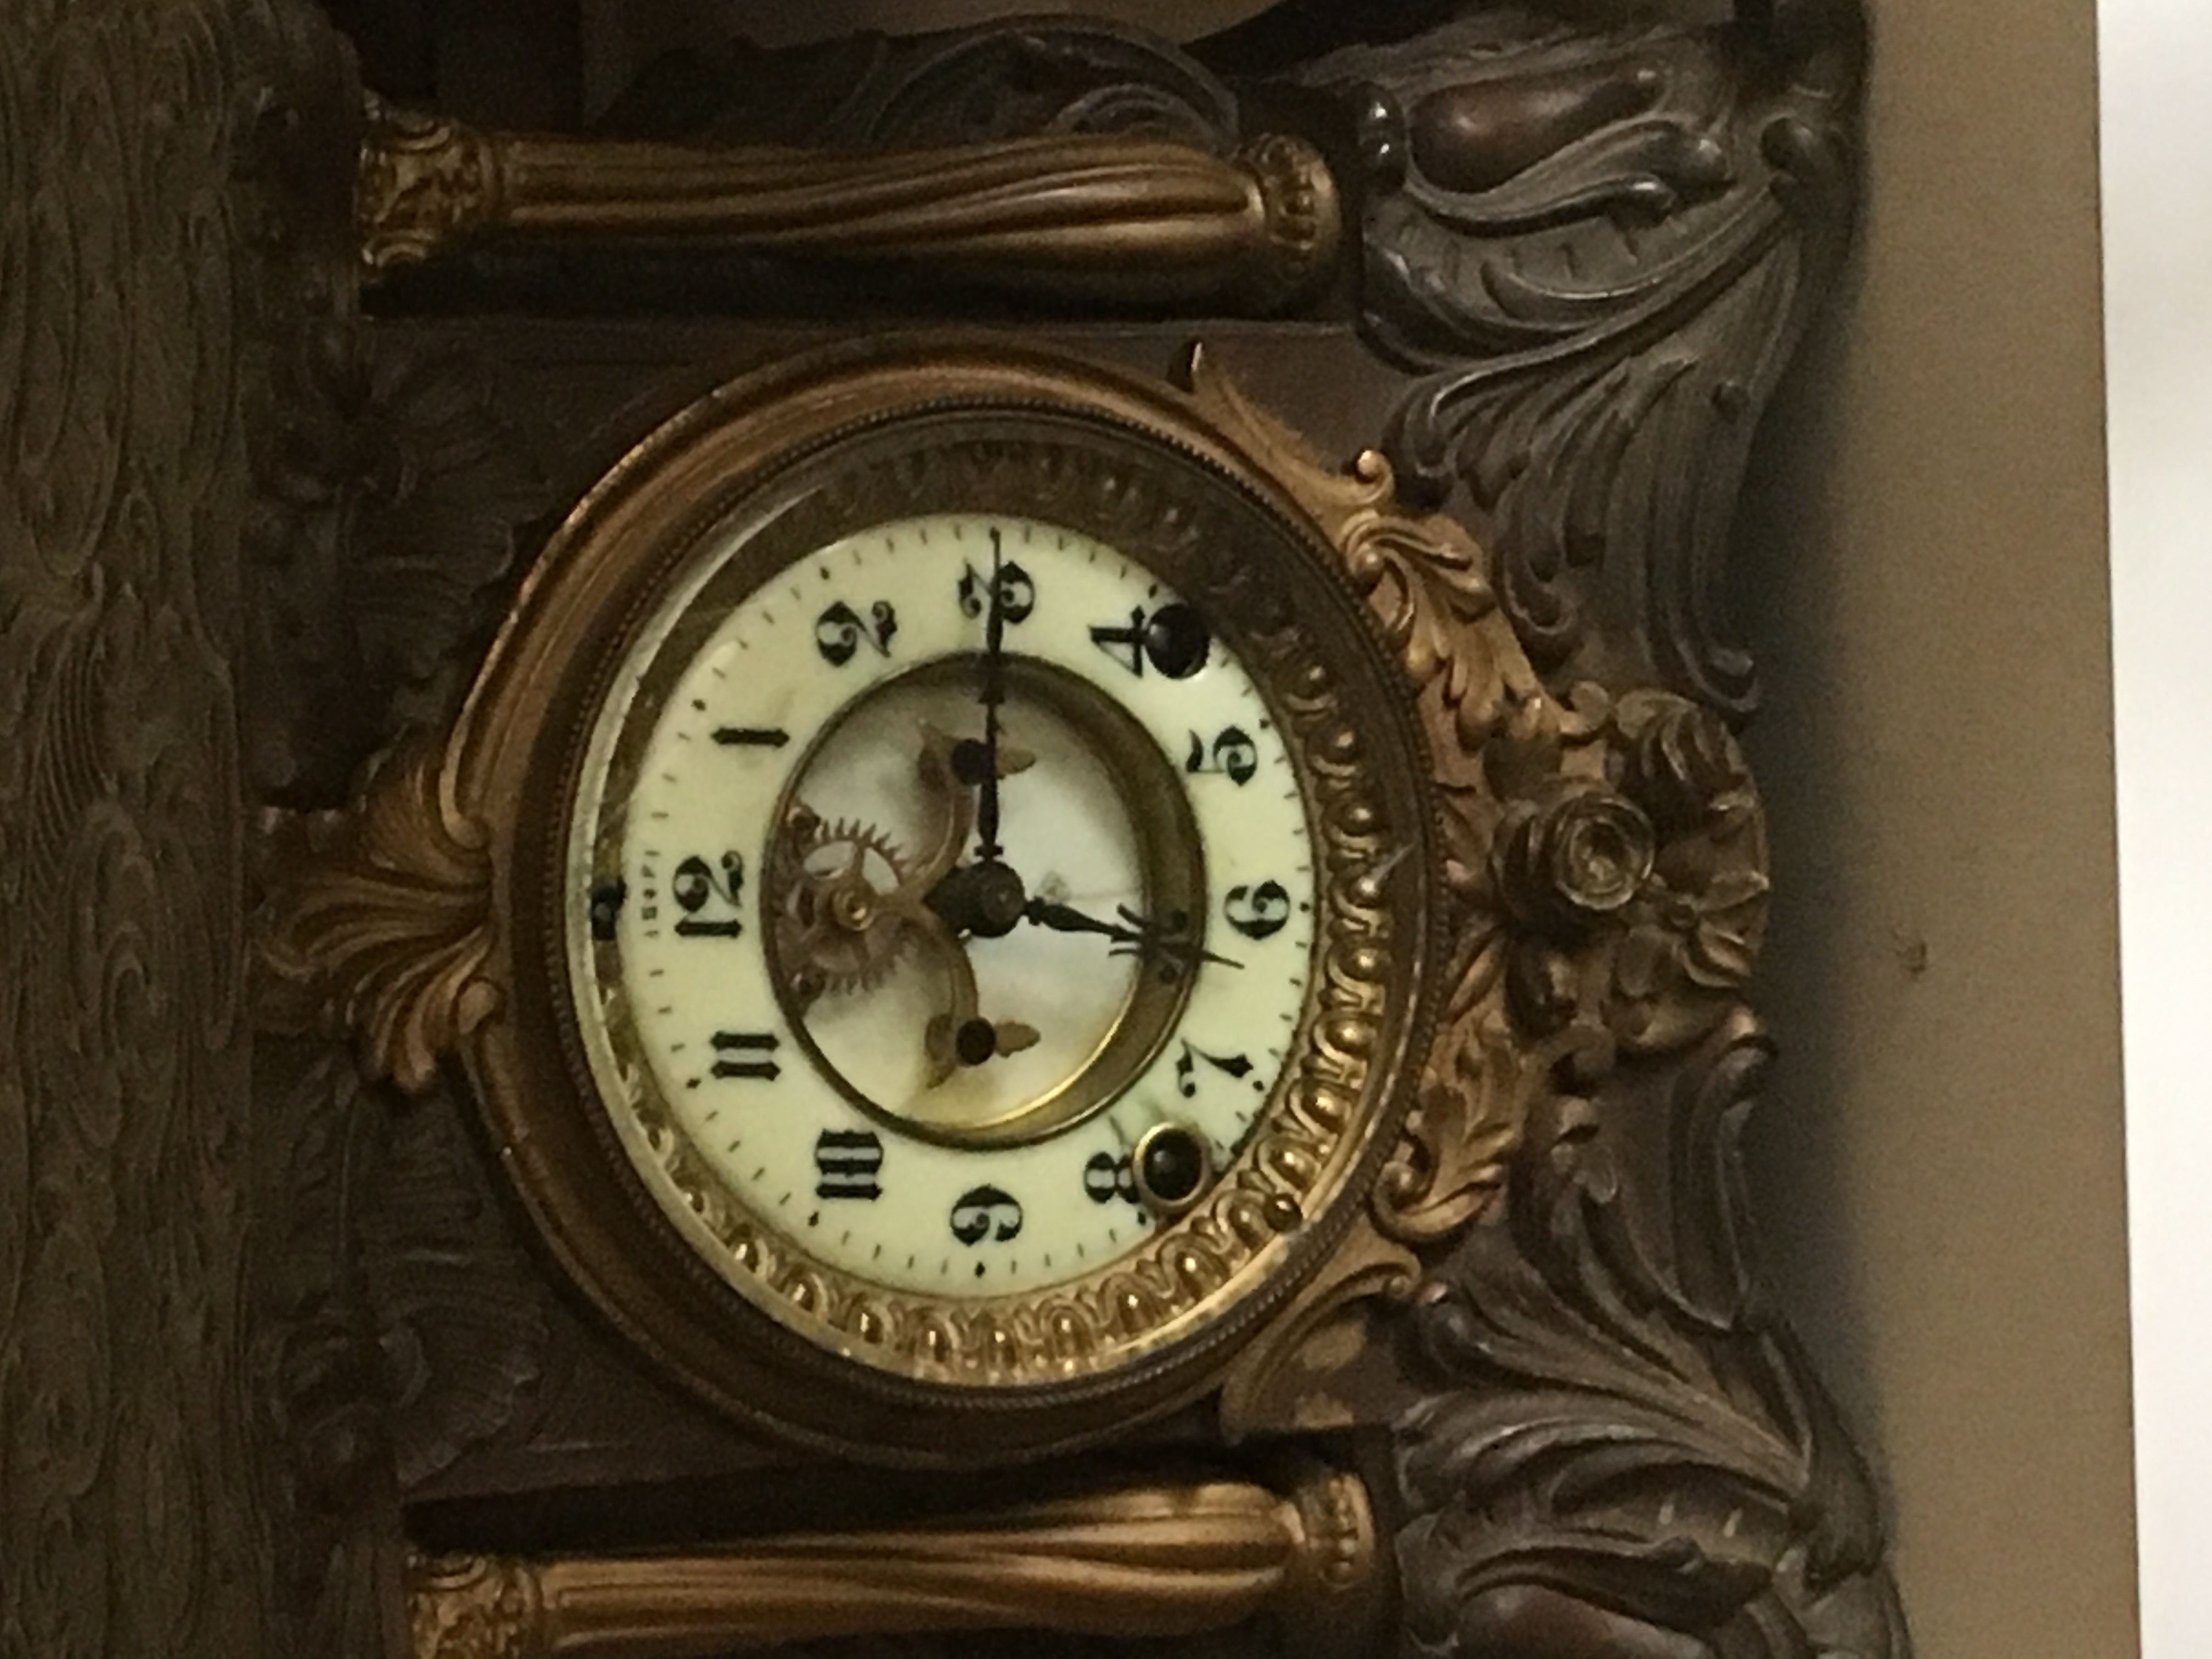 Antique clocks price guide secure subscriber page.